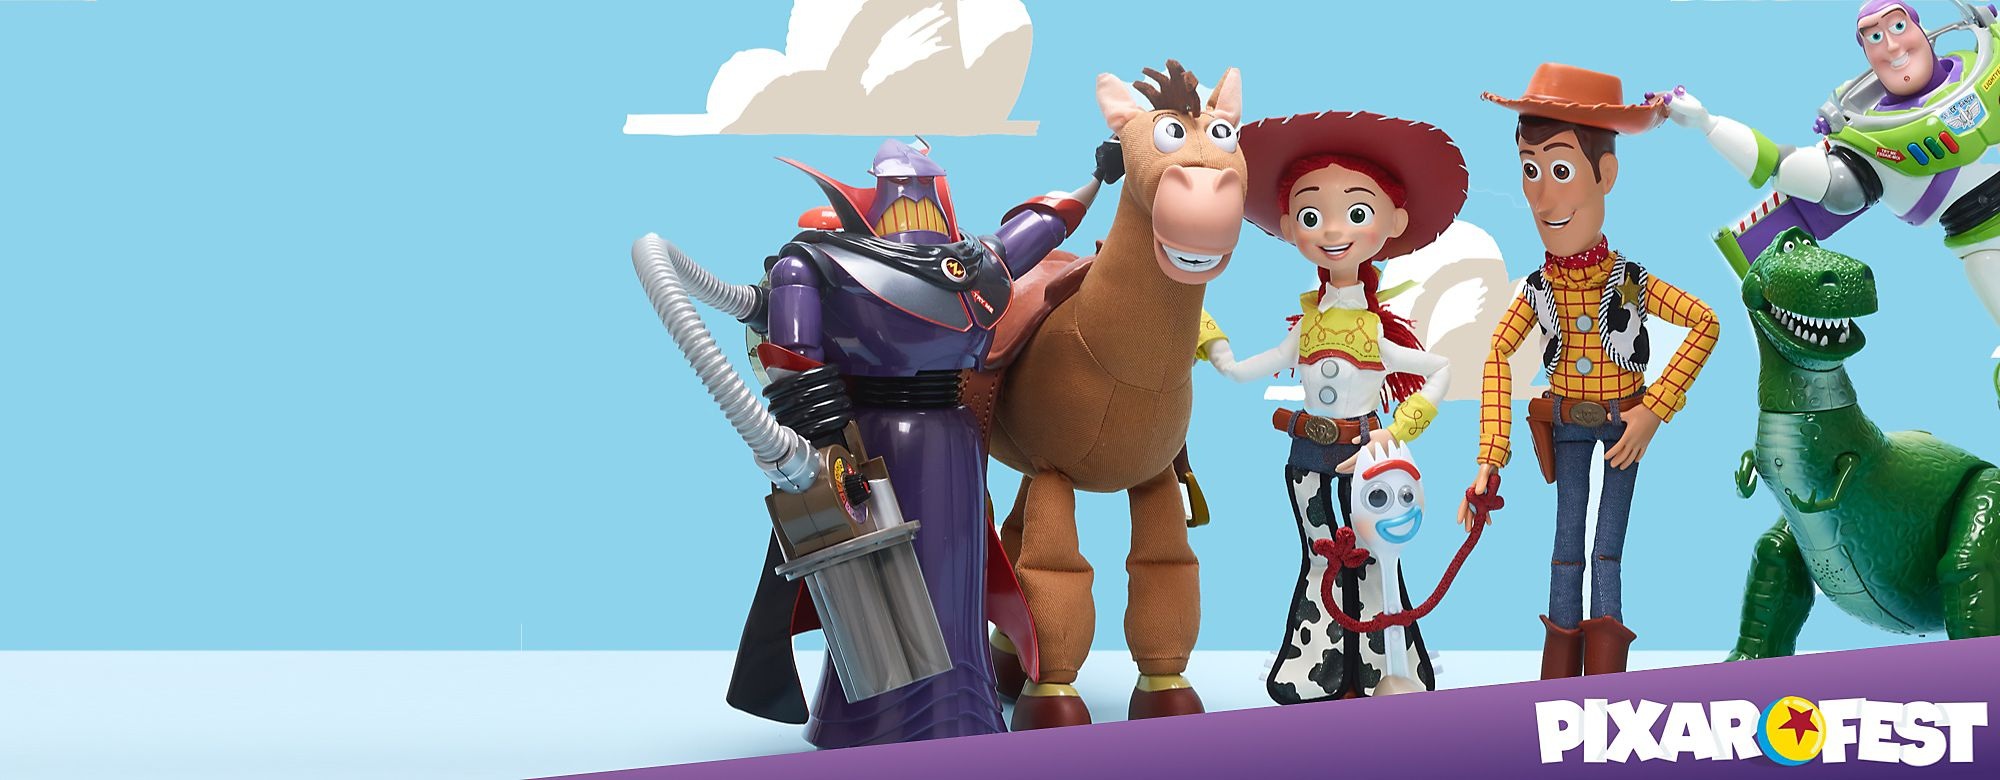 Pixar Fest To celebrate 25 years of Pixar filmmaking, Disney is launching Pixar Fest, a virtual film festival shining a spotlight on all of the movies streaming on Disney+ SHOP ALL PIXAR